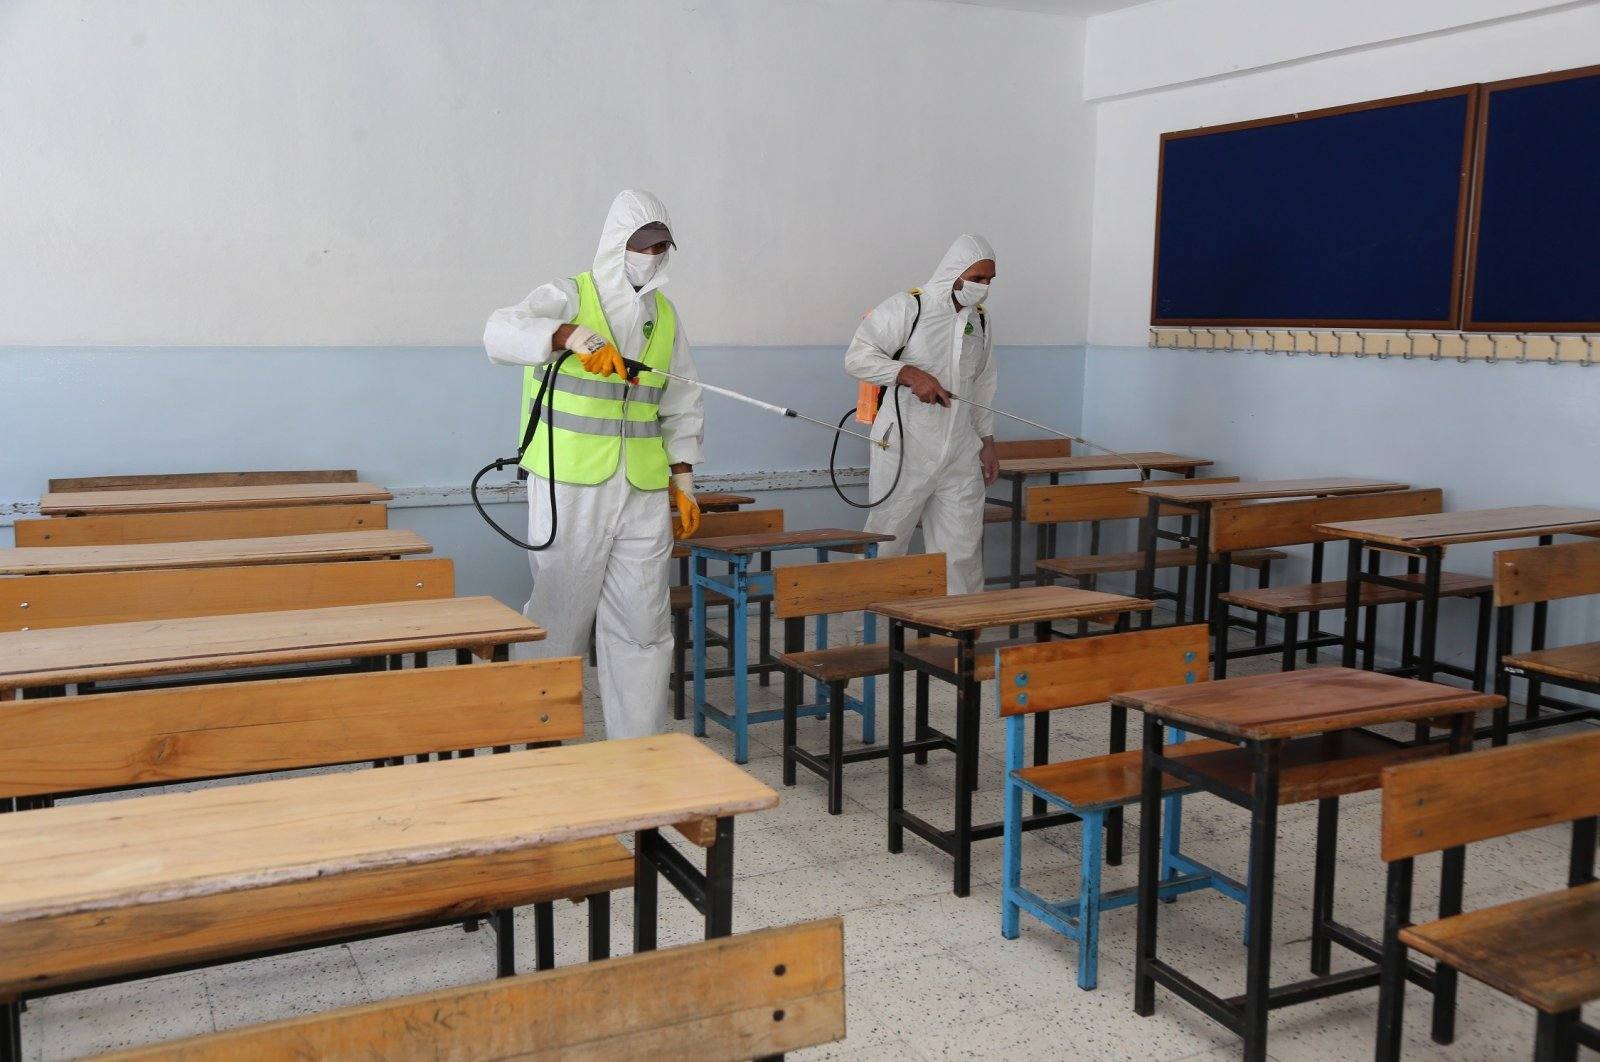 Schools are being disinfected countrywide as exams approach. (IHA File Photo)